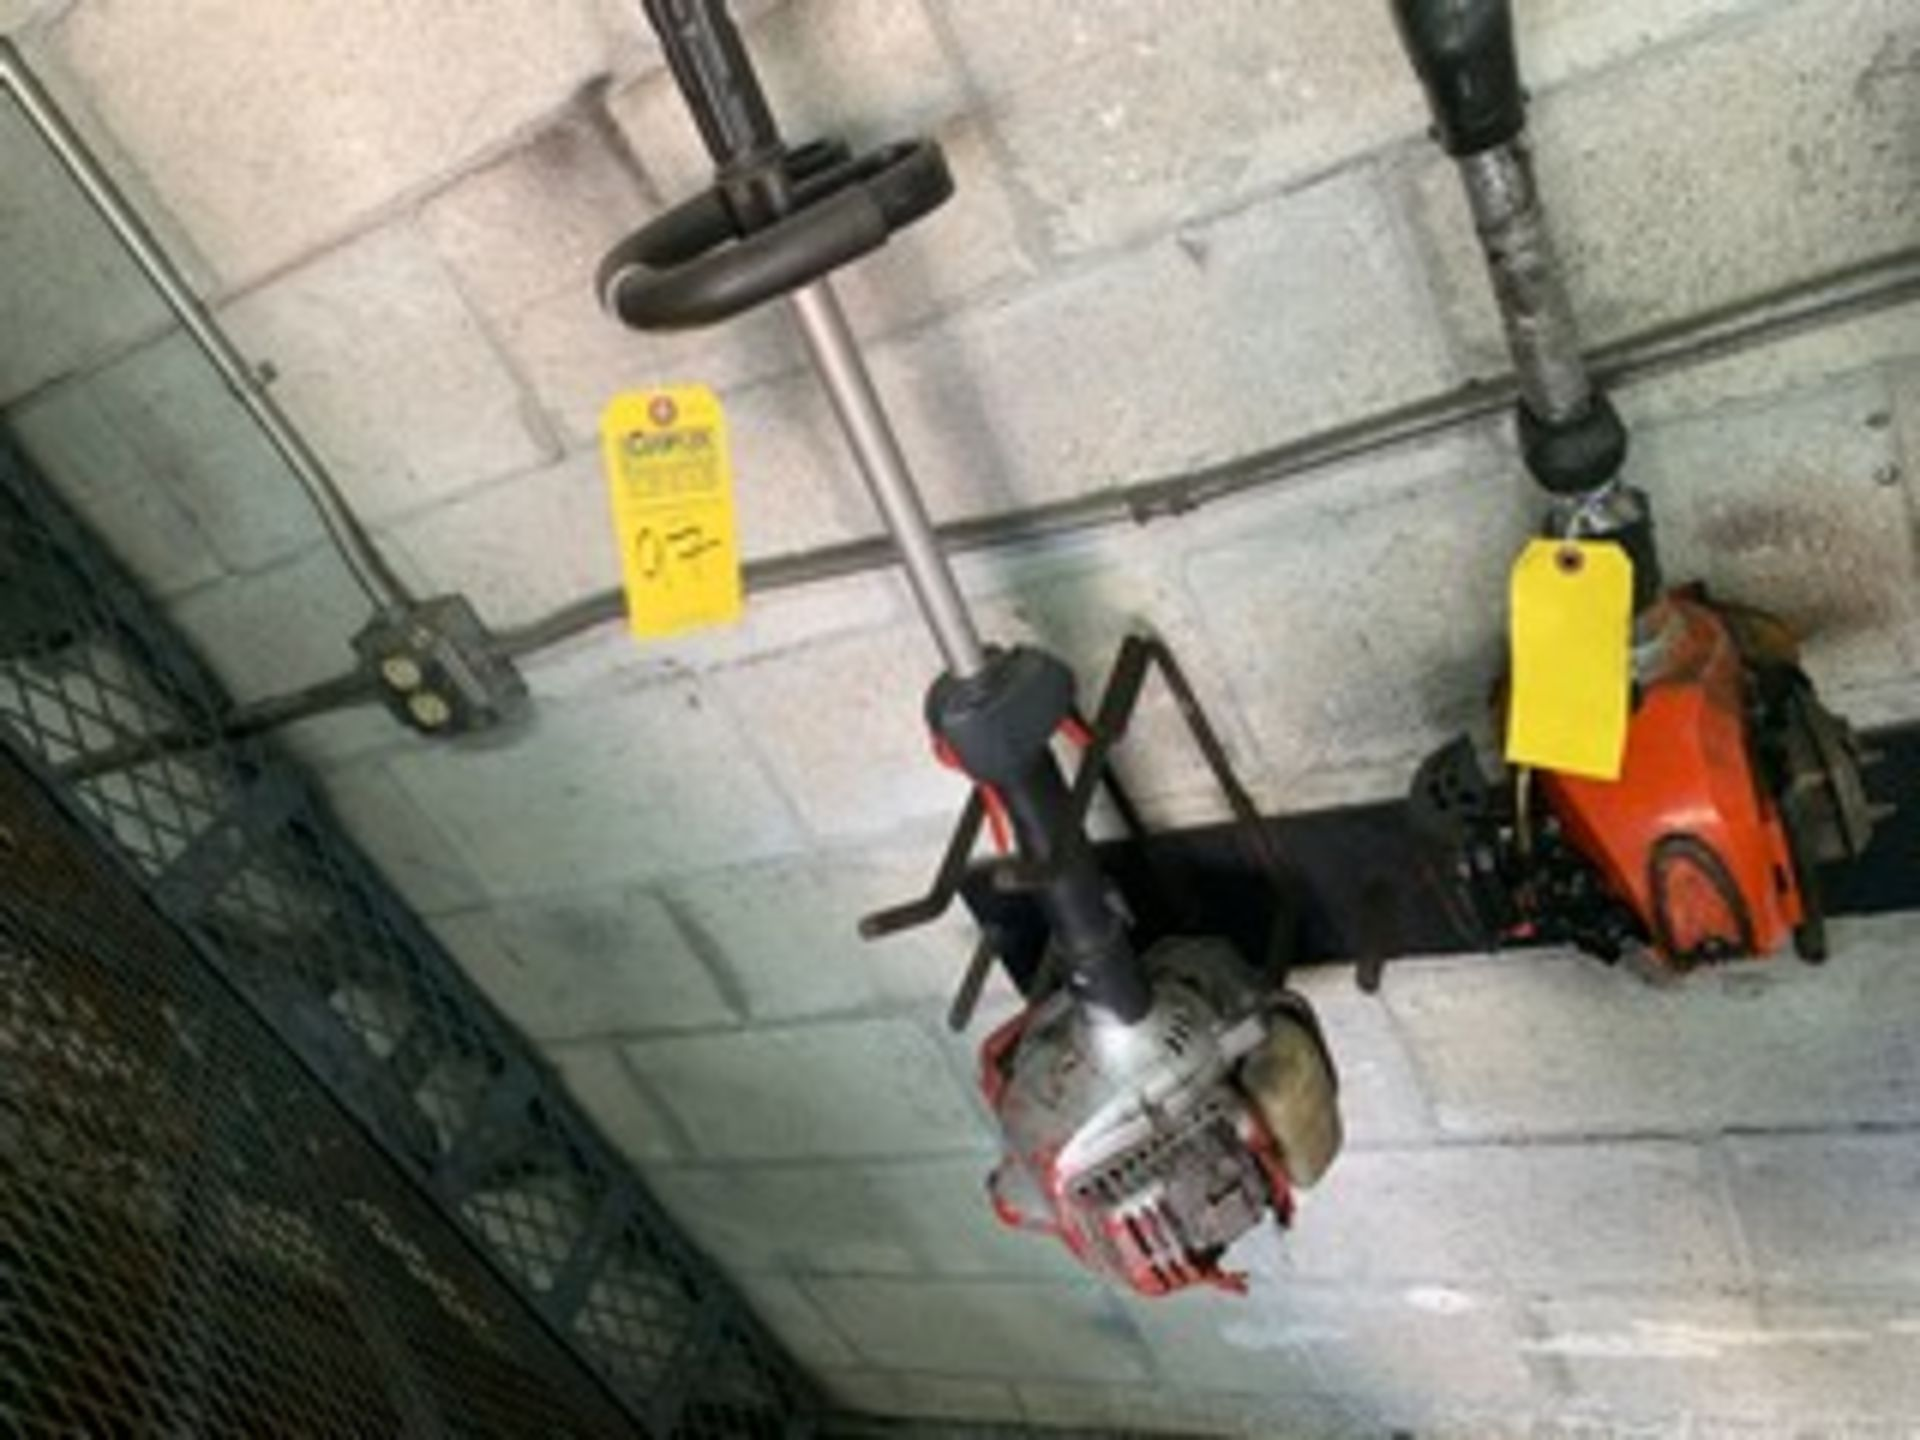 Lot 97 - SHINDAIWA GAS HEDGE TRIMMER